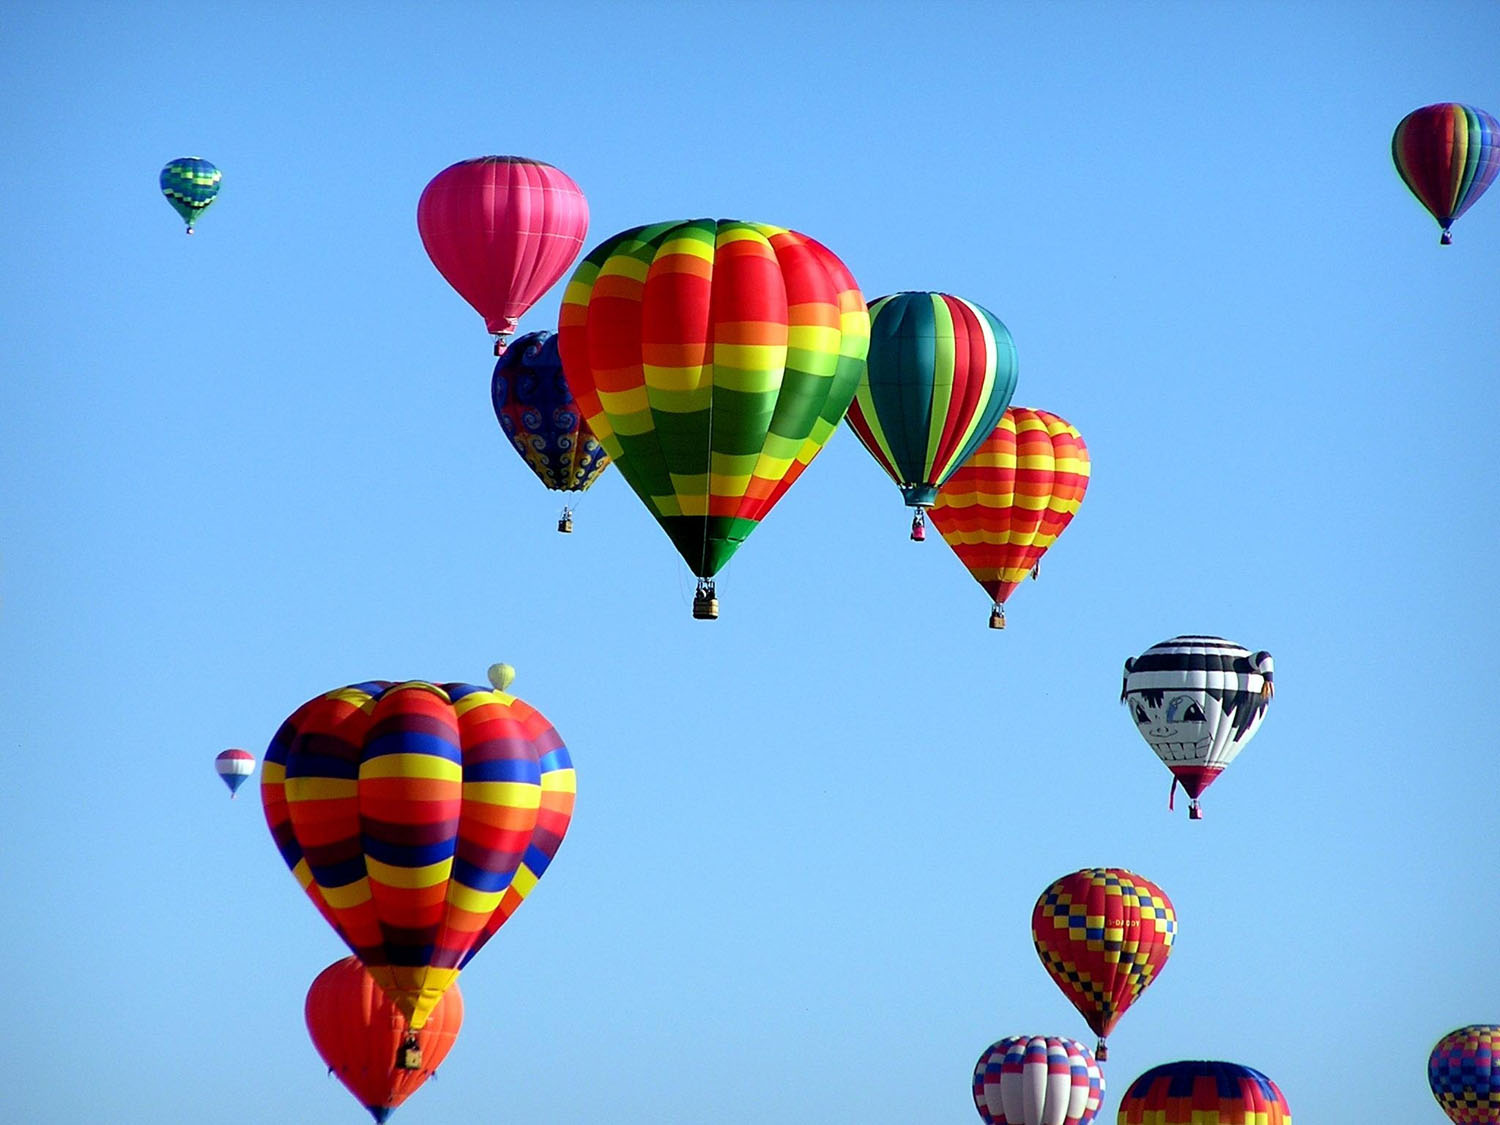 A goupr of hot air balloons rising together at a tourism event